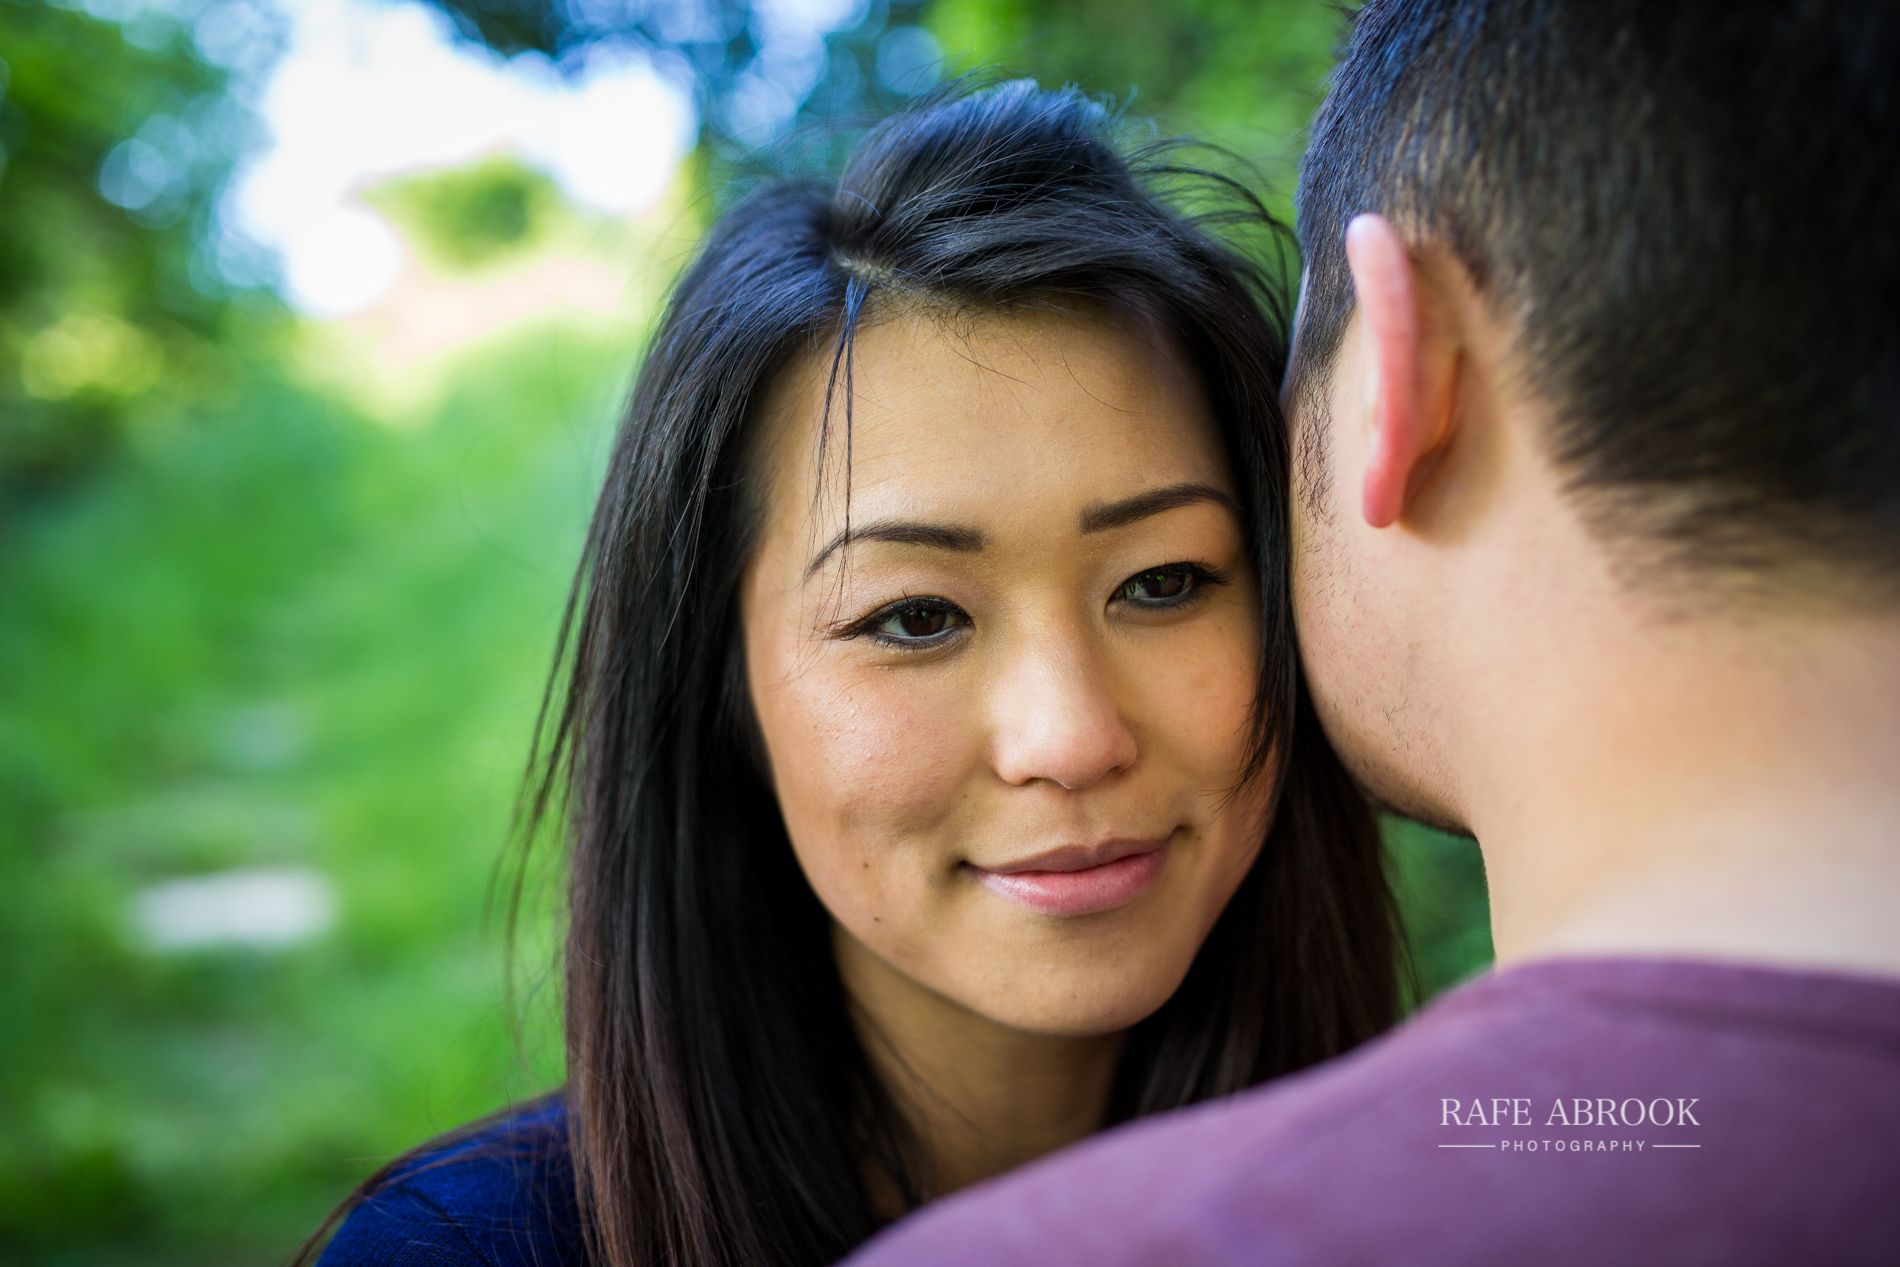 kerry & will engagement shoot totternhoe knolls dunstable bedfordshire-1038.jpg